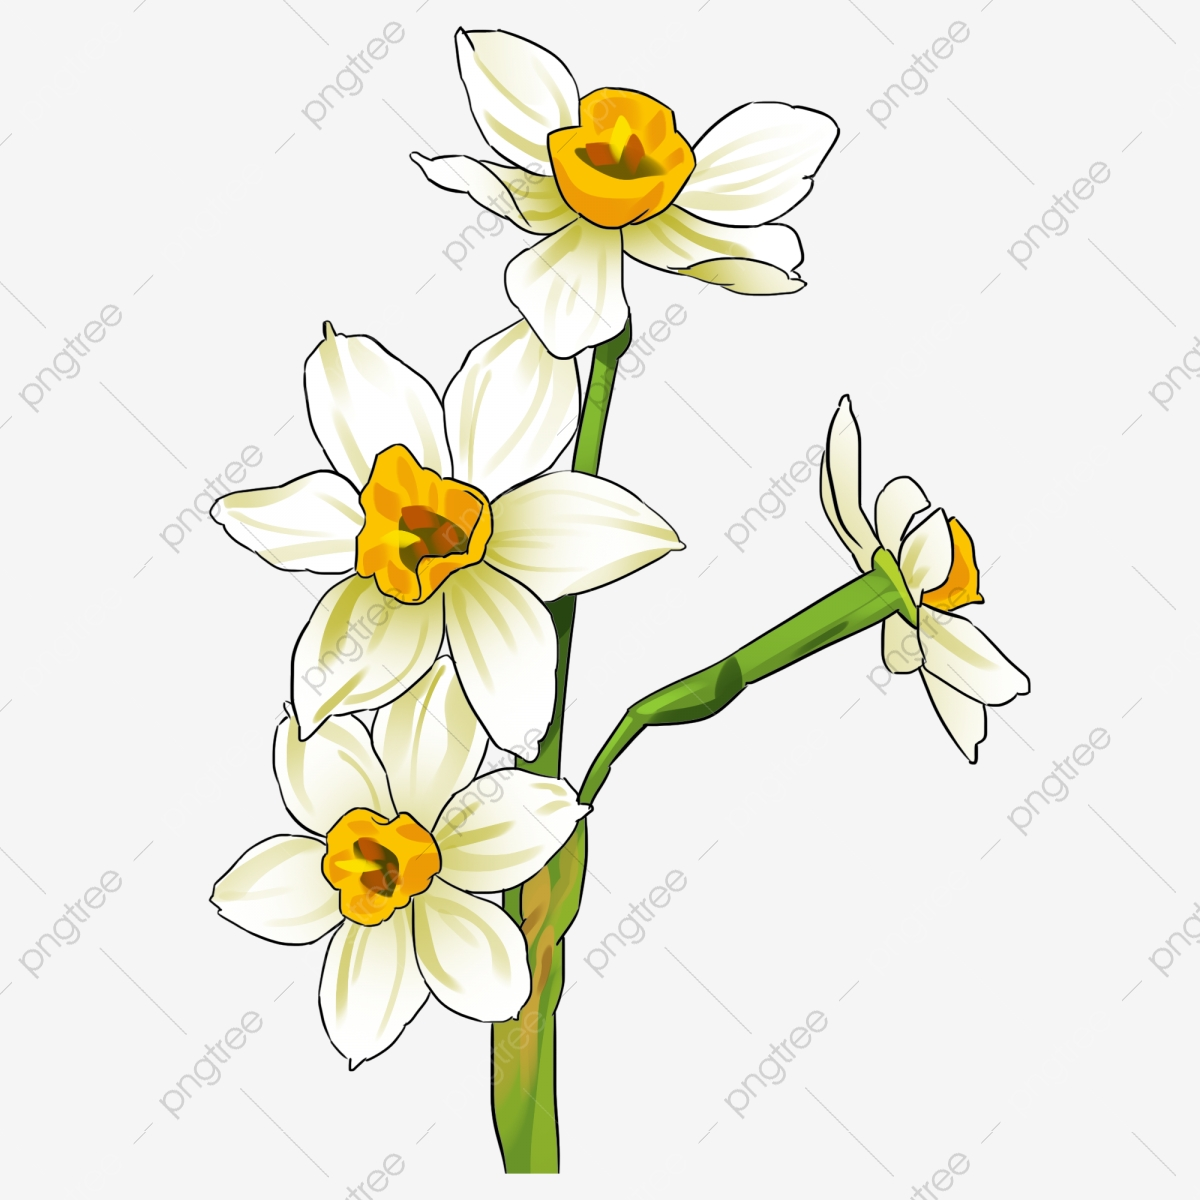 Hand Painted Botanical Flowers Daffodil Flowering Branch Holiday Decoration Flower Cartoon Daffodil Ornamental Plant Winter Indoor Flower Png Transparent Clipart Image And Psd File For Free Download